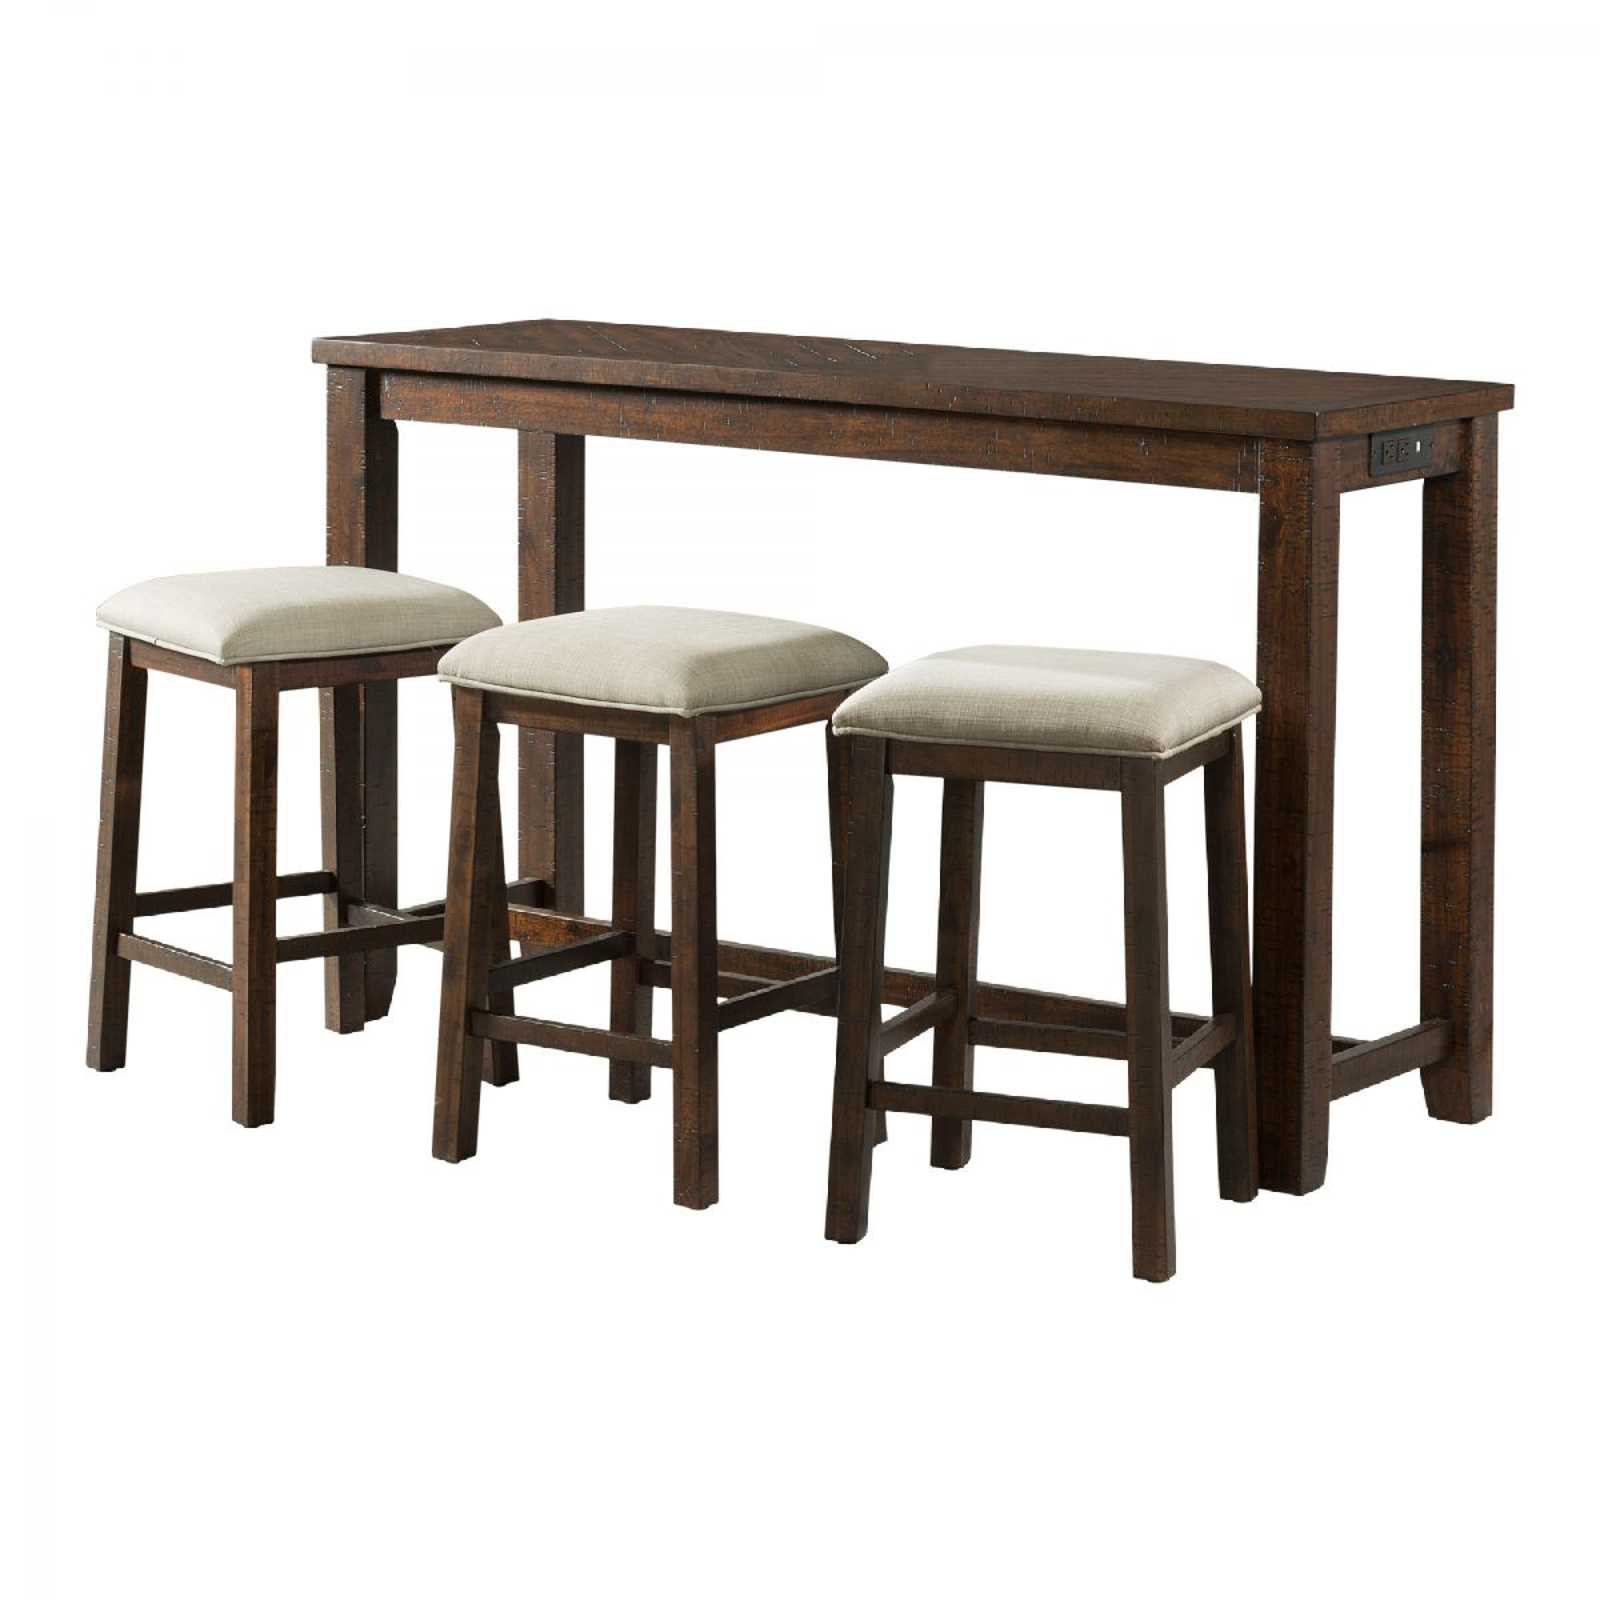 Picture of Jax Pub Table & 3 Stools